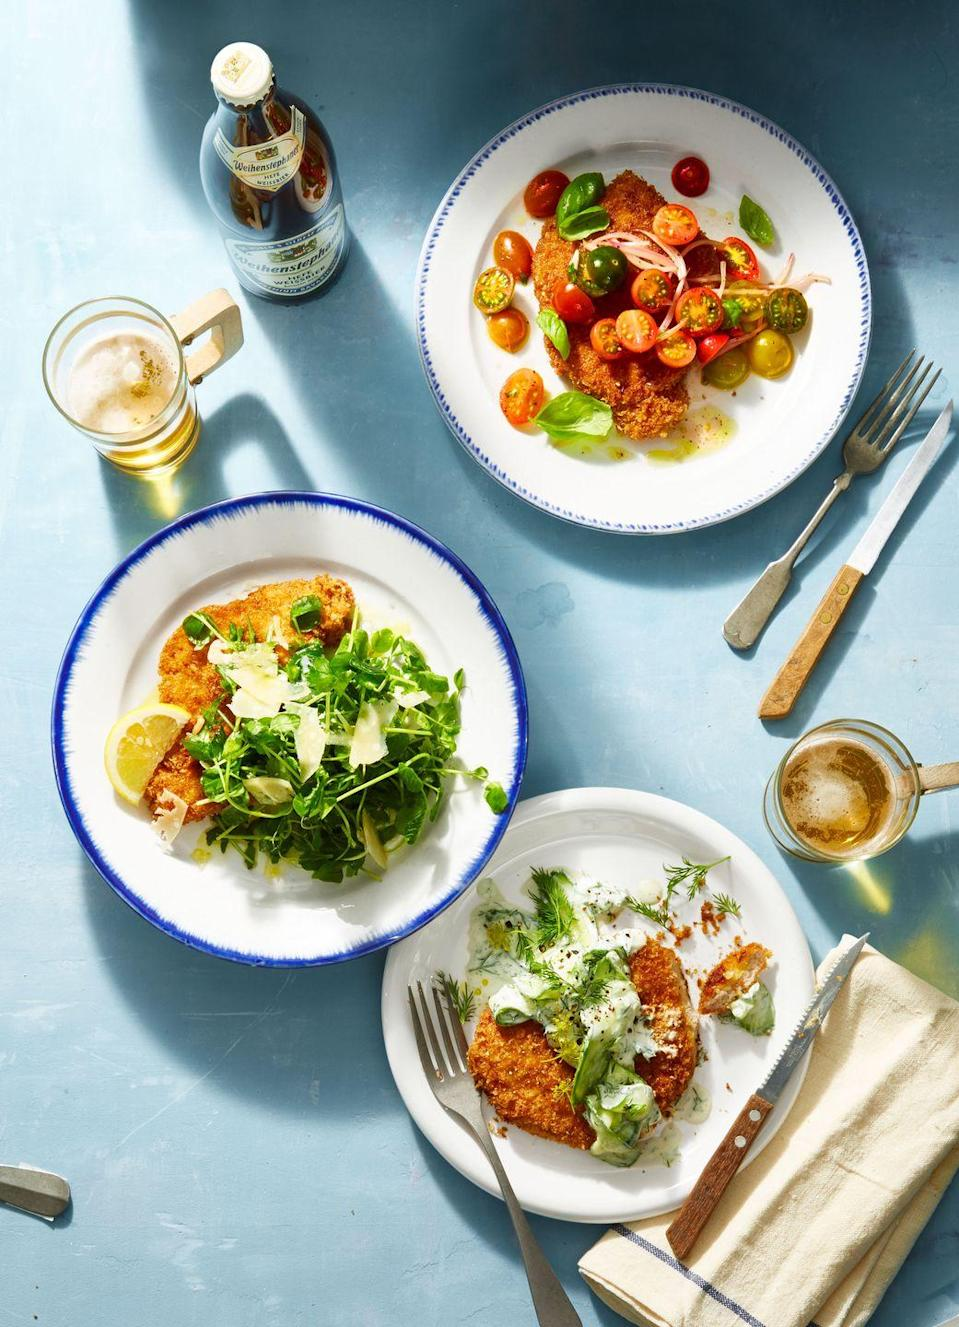 """<p>Extra-crispy chicken schnitzel smothered in your choice of 3 bright, colorful toppers is an easy weeknight meal that tastes like something from a restaurant.</p><p><em><a href=""""https://www.goodhousekeeping.com/food-recipes/a9961/chicken-schnitzel-recipe/"""" rel=""""nofollow noopener"""" target=""""_blank"""" data-ylk=""""slk:Get the recipe for Chicken Schnitzel, 3 Ways »"""" class=""""link rapid-noclick-resp"""">Get the recipe for Chicken Schnitzel, 3 Ways »</a></em></p>"""